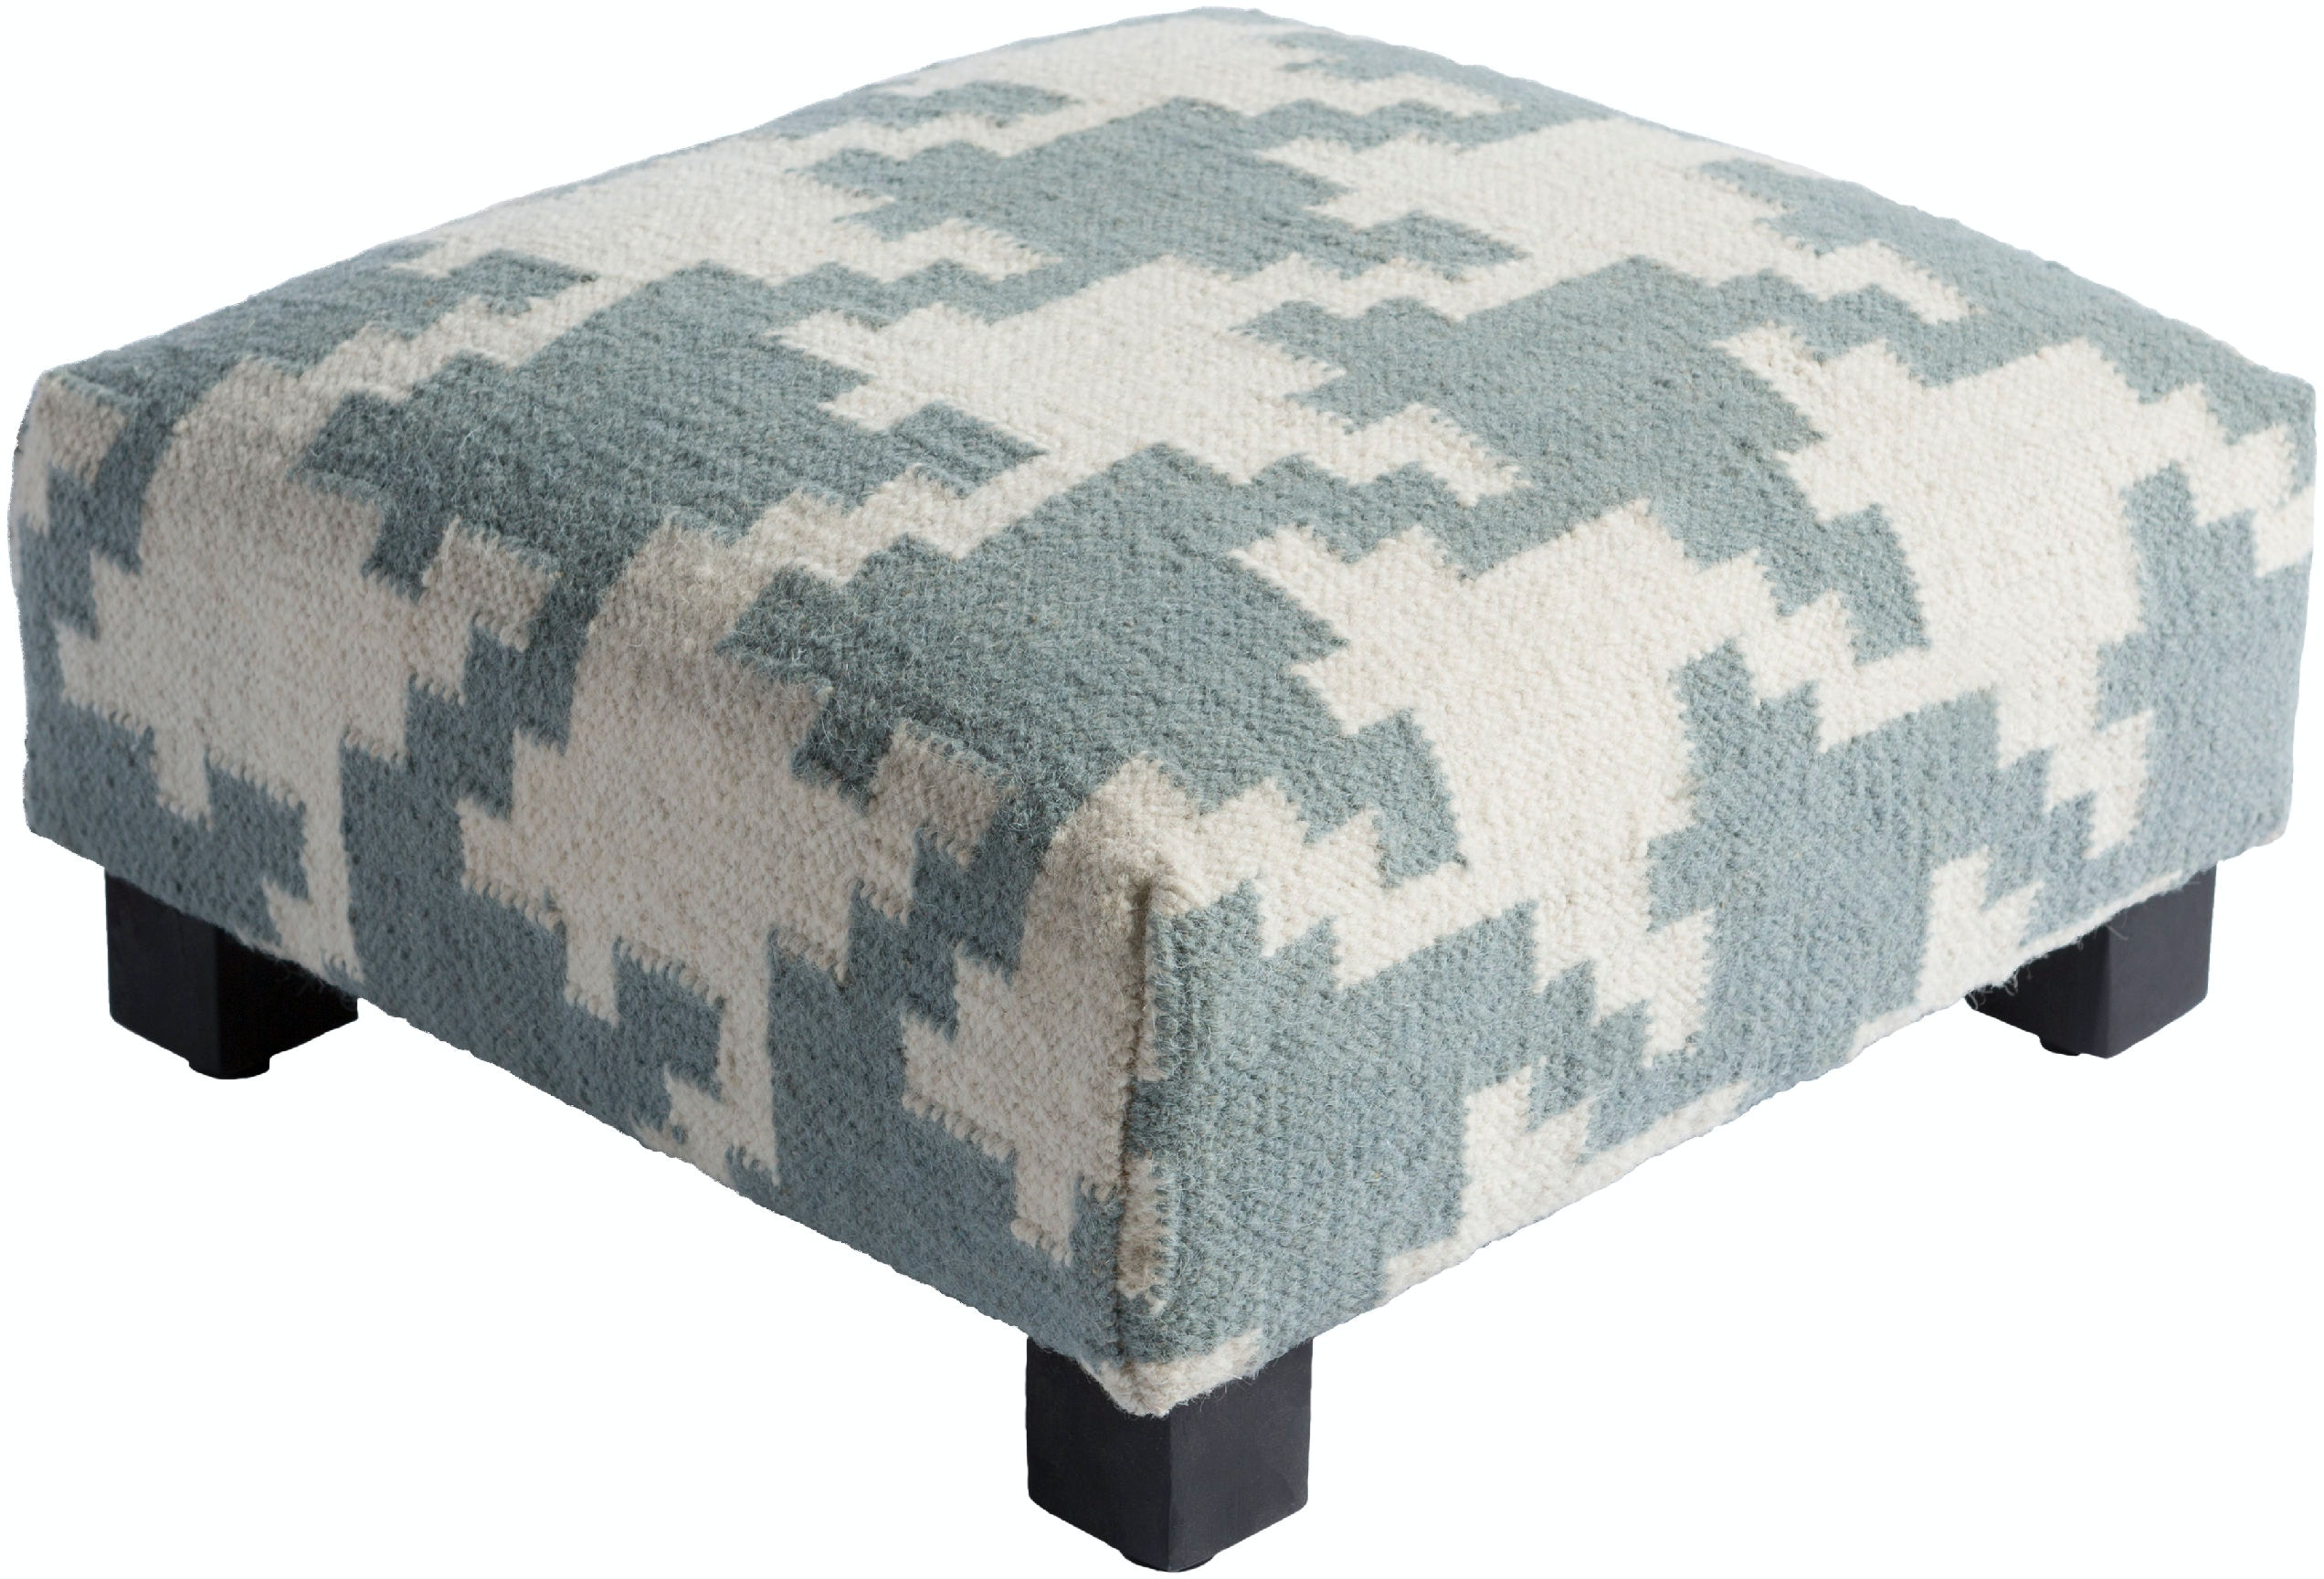 Surya Furniture 18.8 X 18.8 X 9.2 Foot Stool FL1168 474723